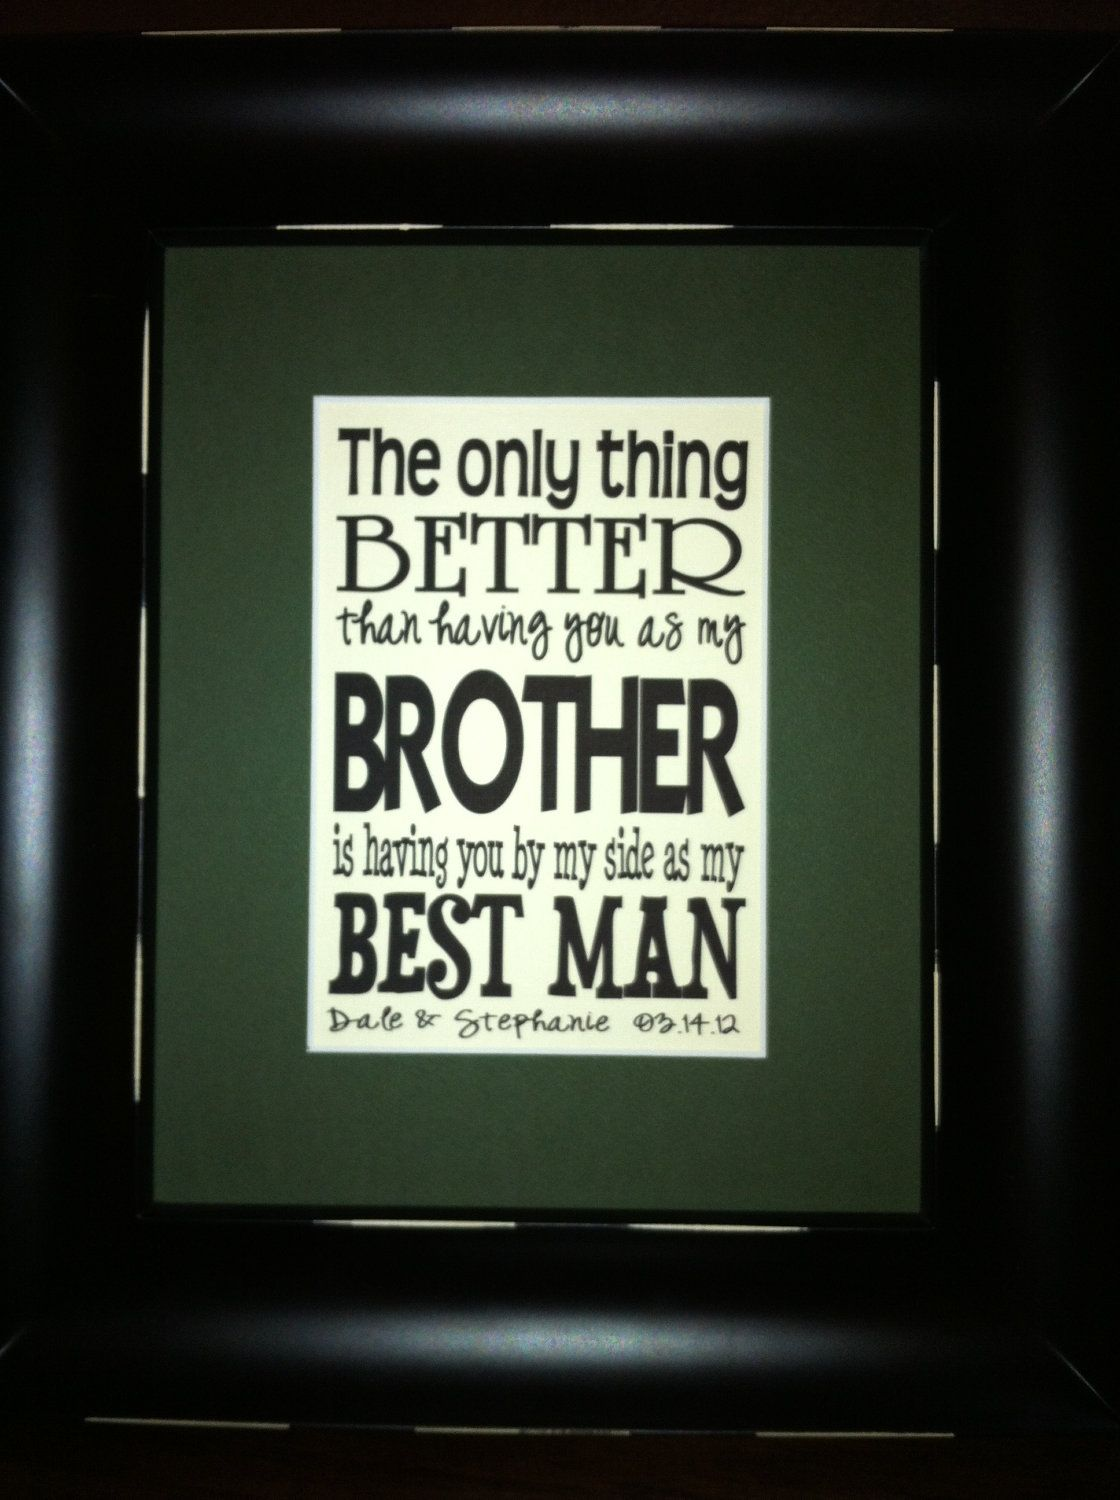 85530a4e9c0f2 Having You As A Brother and Best Man Custom Print matted on an 8x10 ...